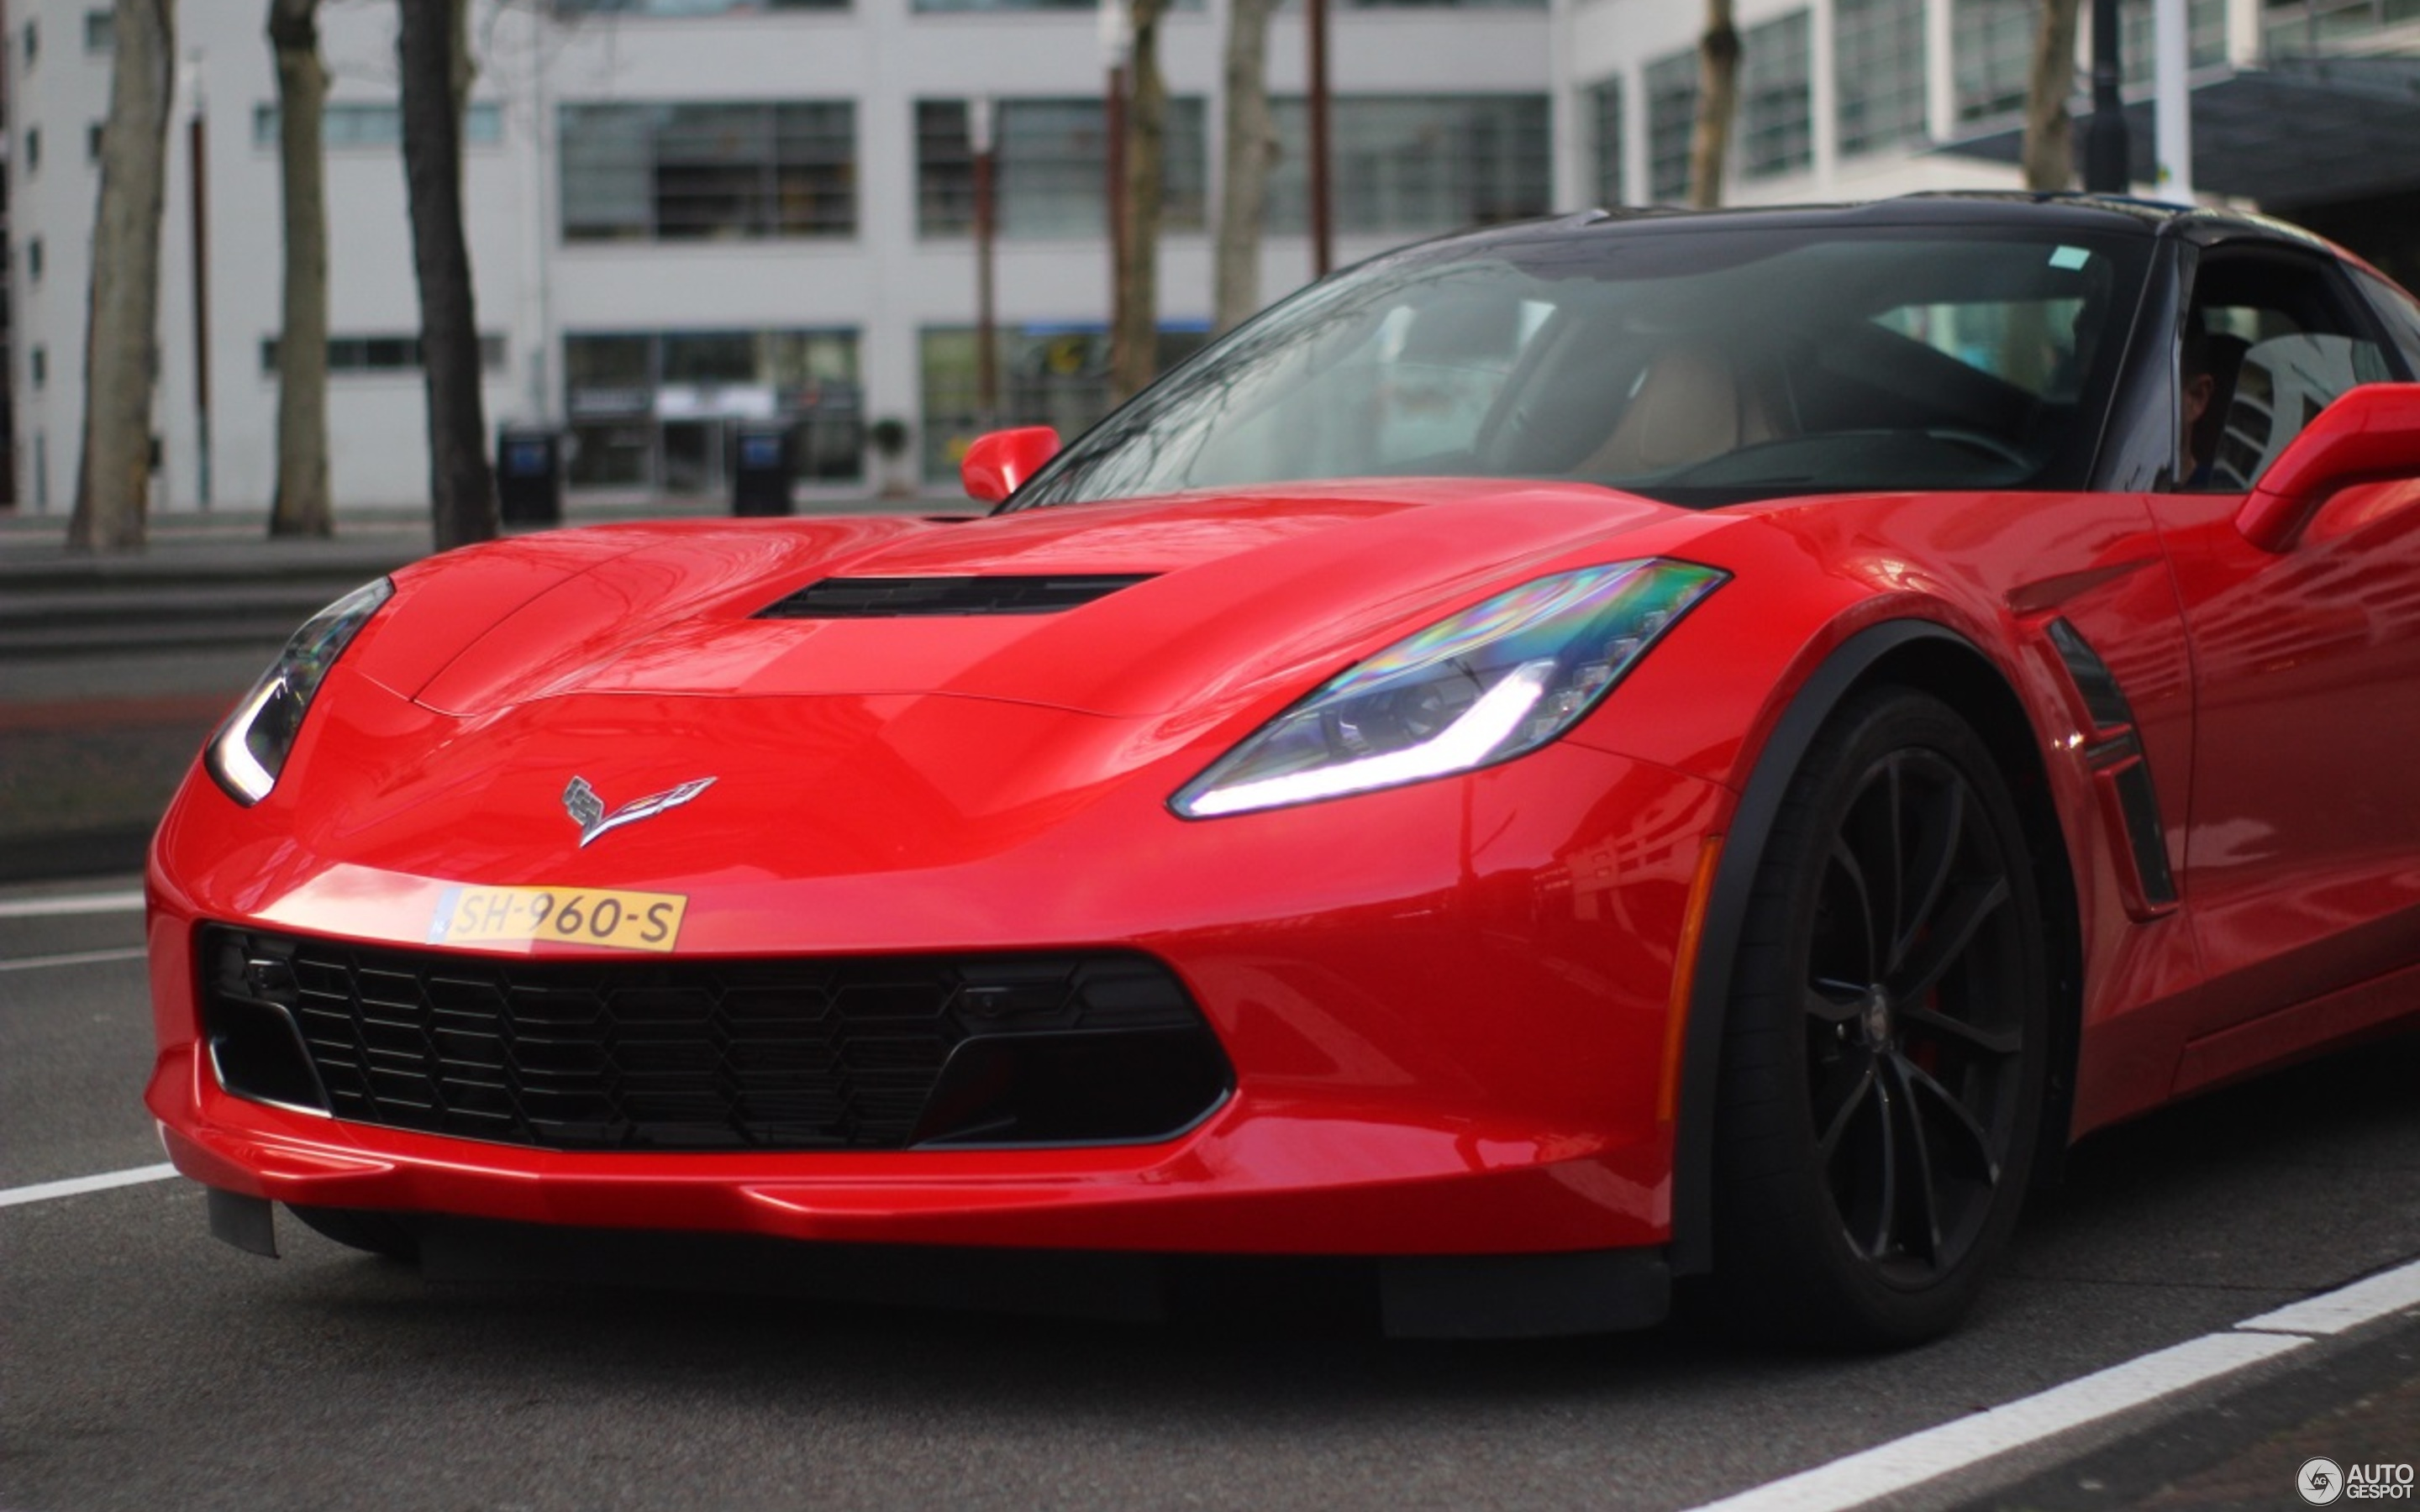 Chevrolet Corvette C7 Grand Sport - 10 February 2019 - Autogespot